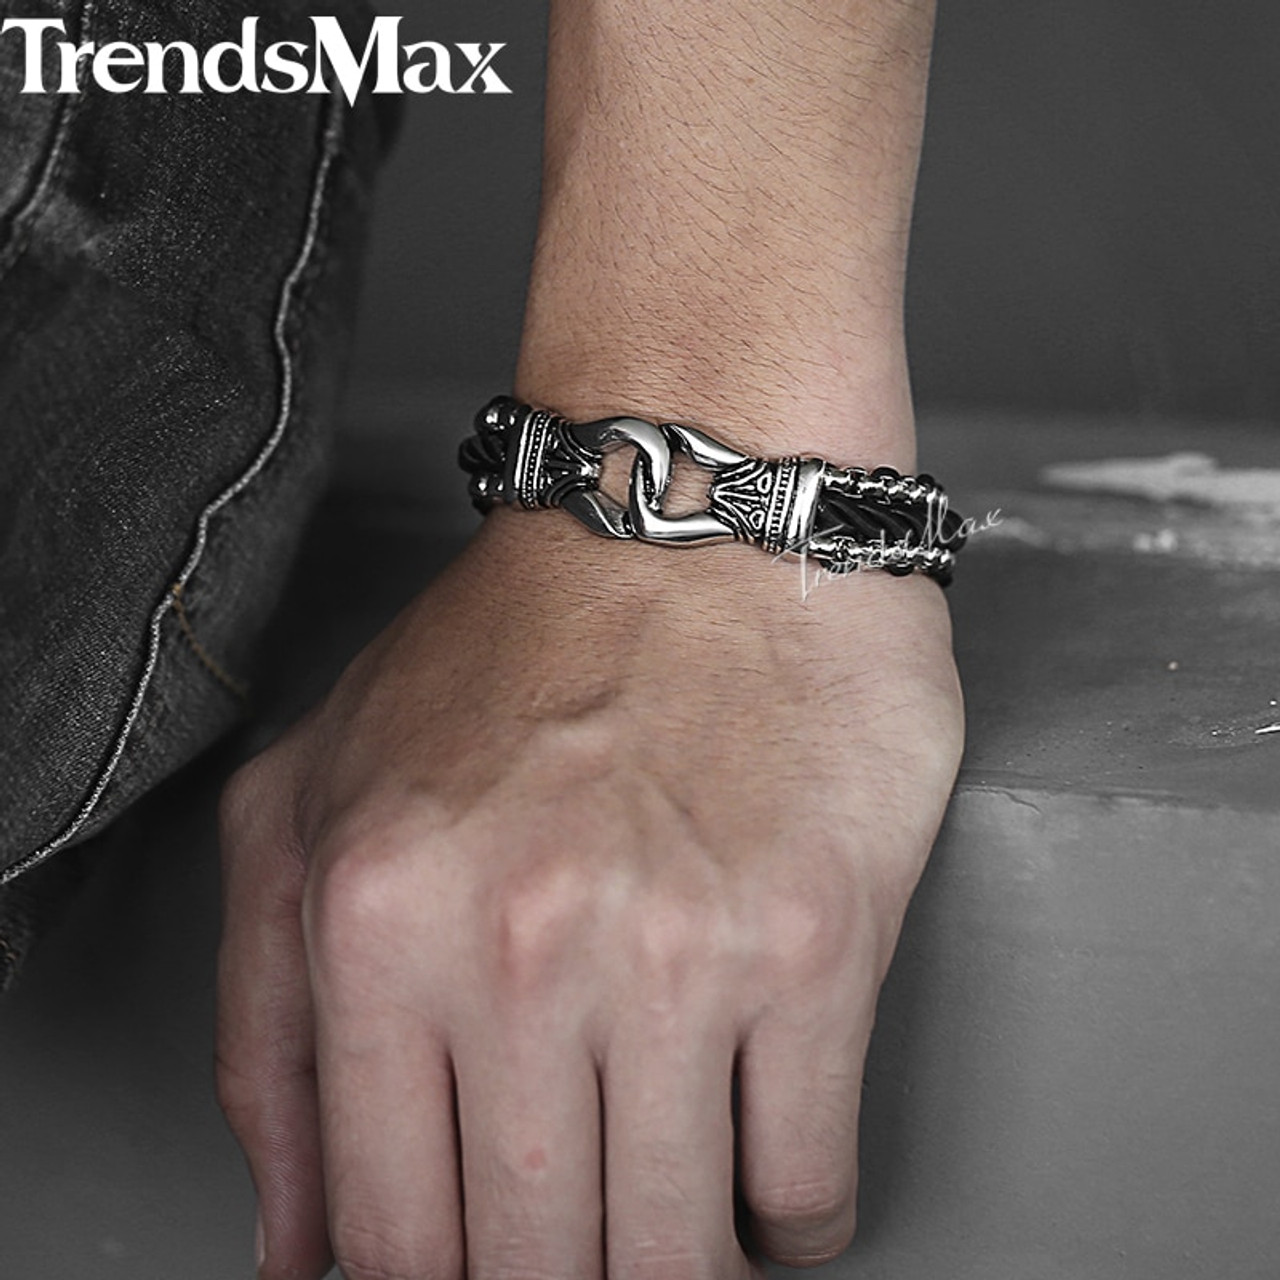 Trendsmax Men's Bracelets Black Leather Strand Stainless Steel Knot  Bracelet For Male Jewelry Dropshipping Wholesale 13mm KHB496